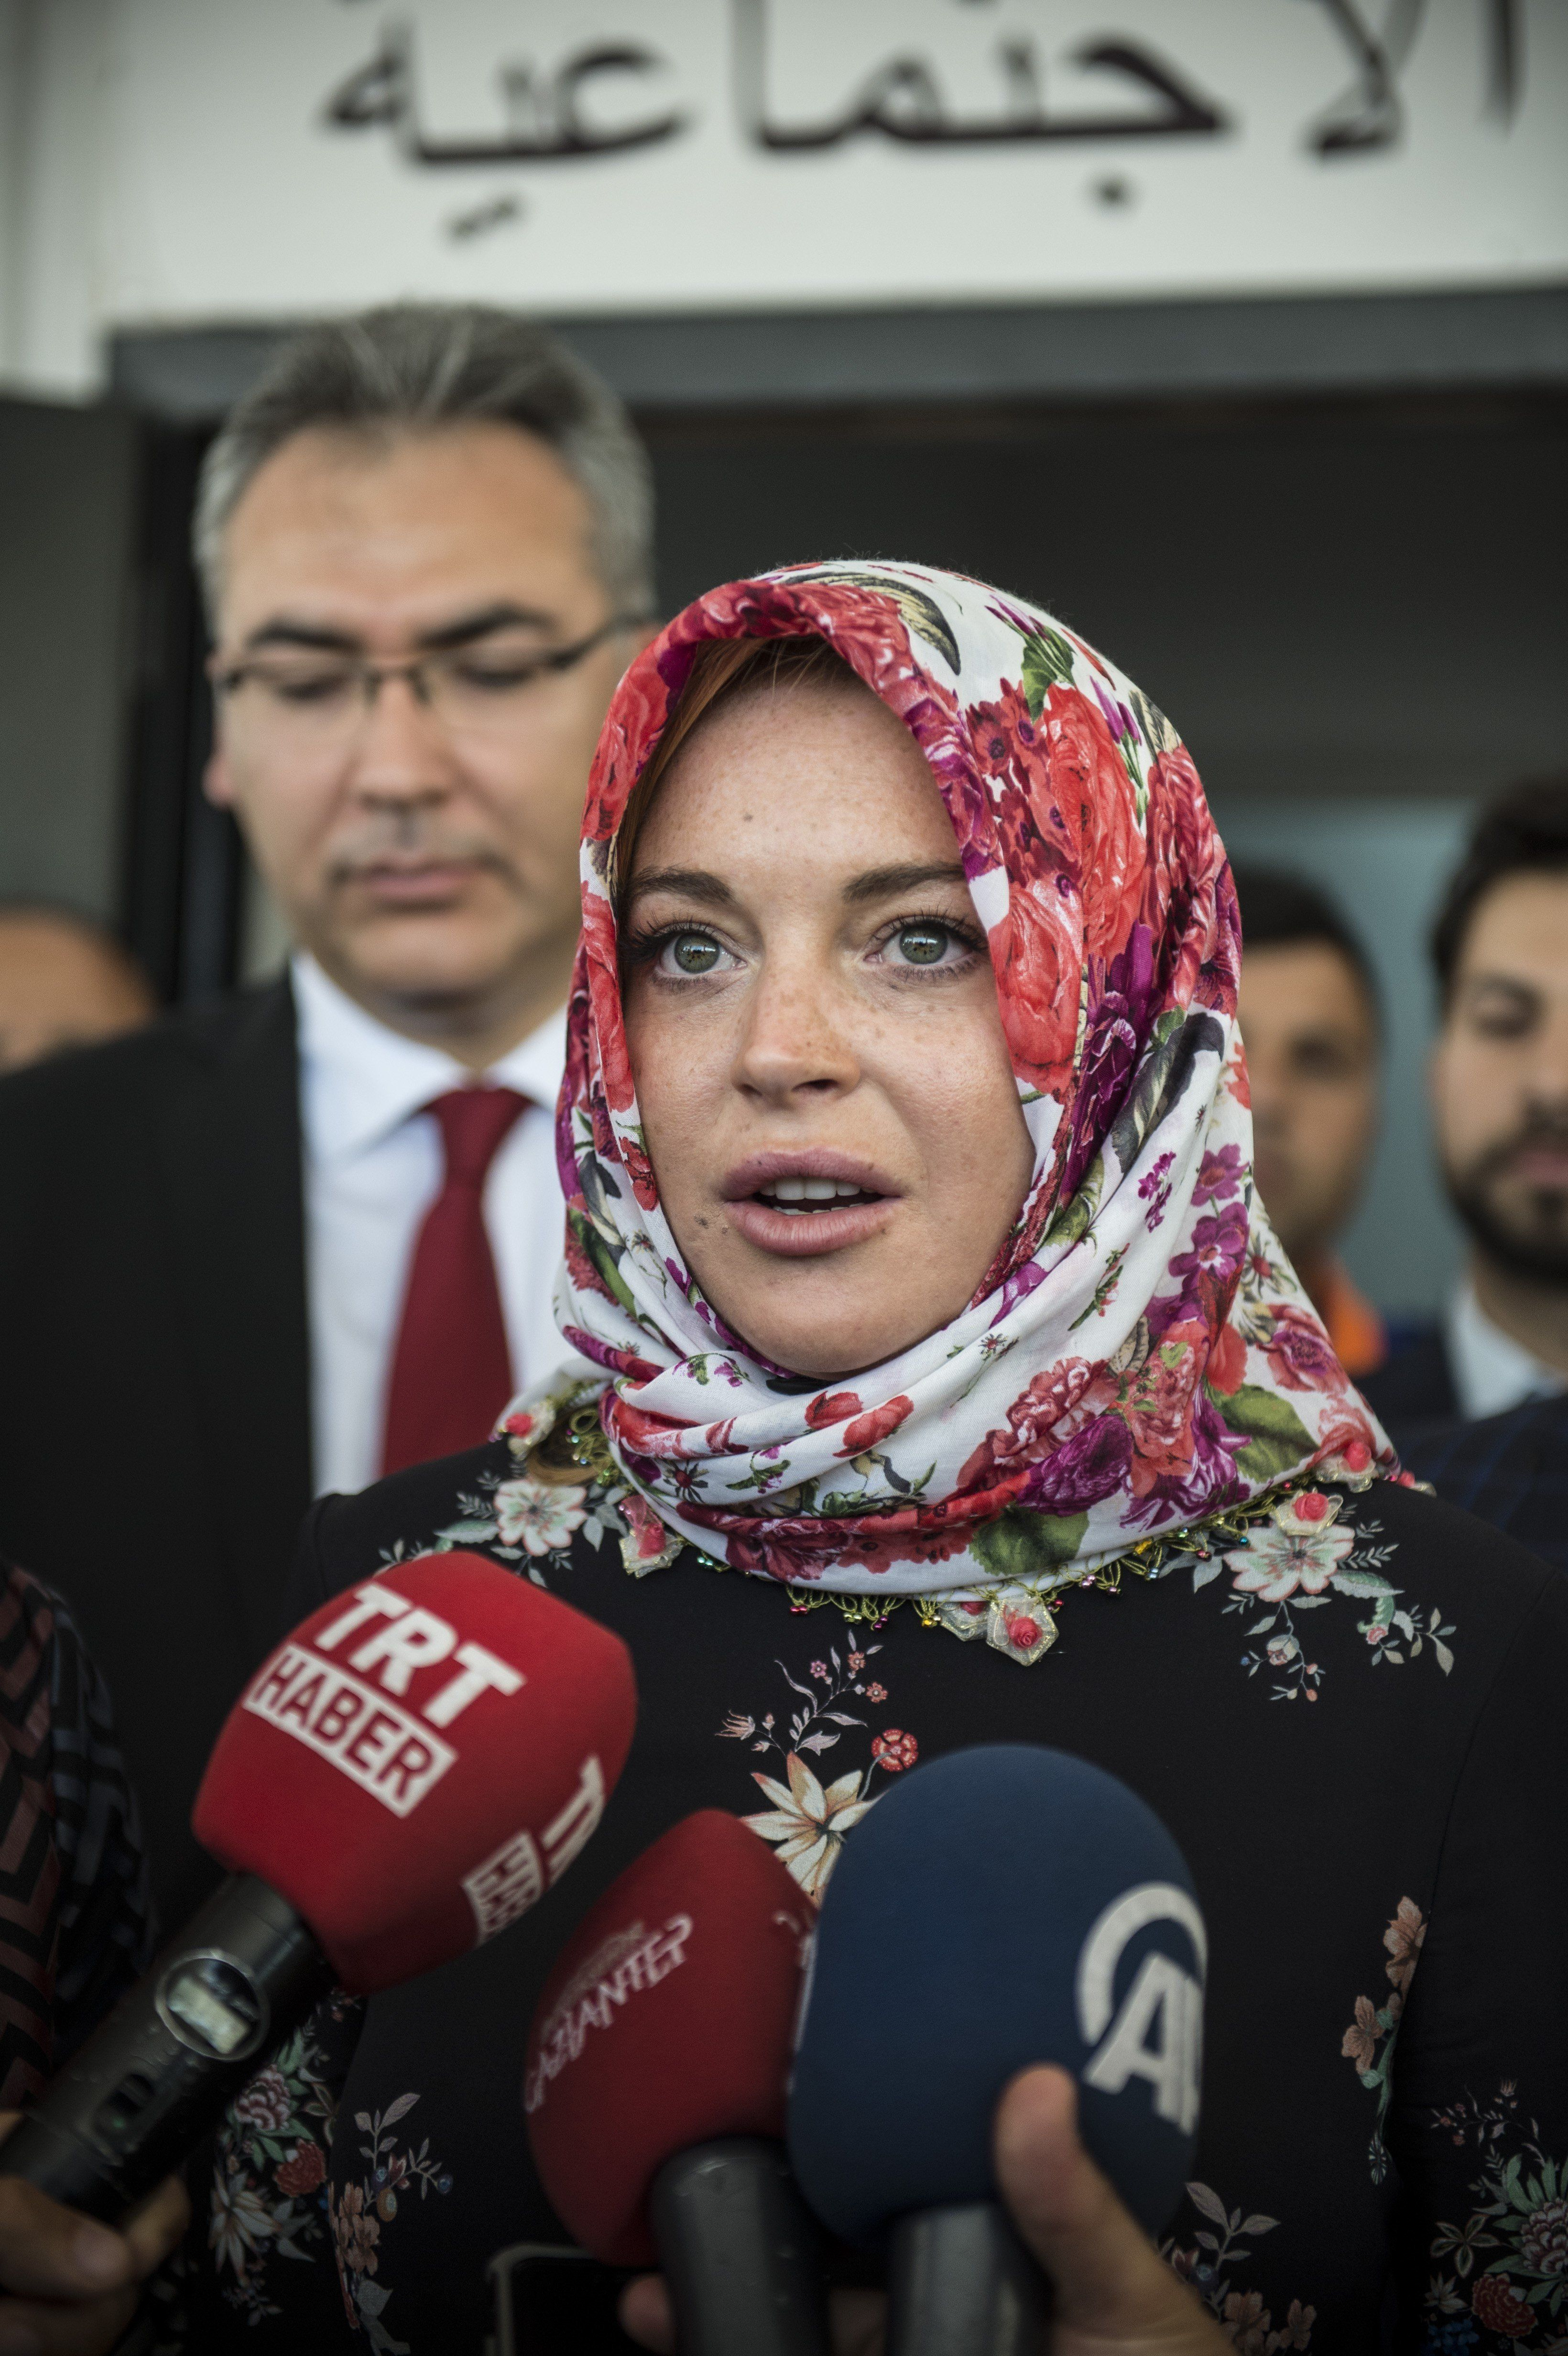 Lindsay Lohan speaks with press after visiting Syrian refugees in Turkey.